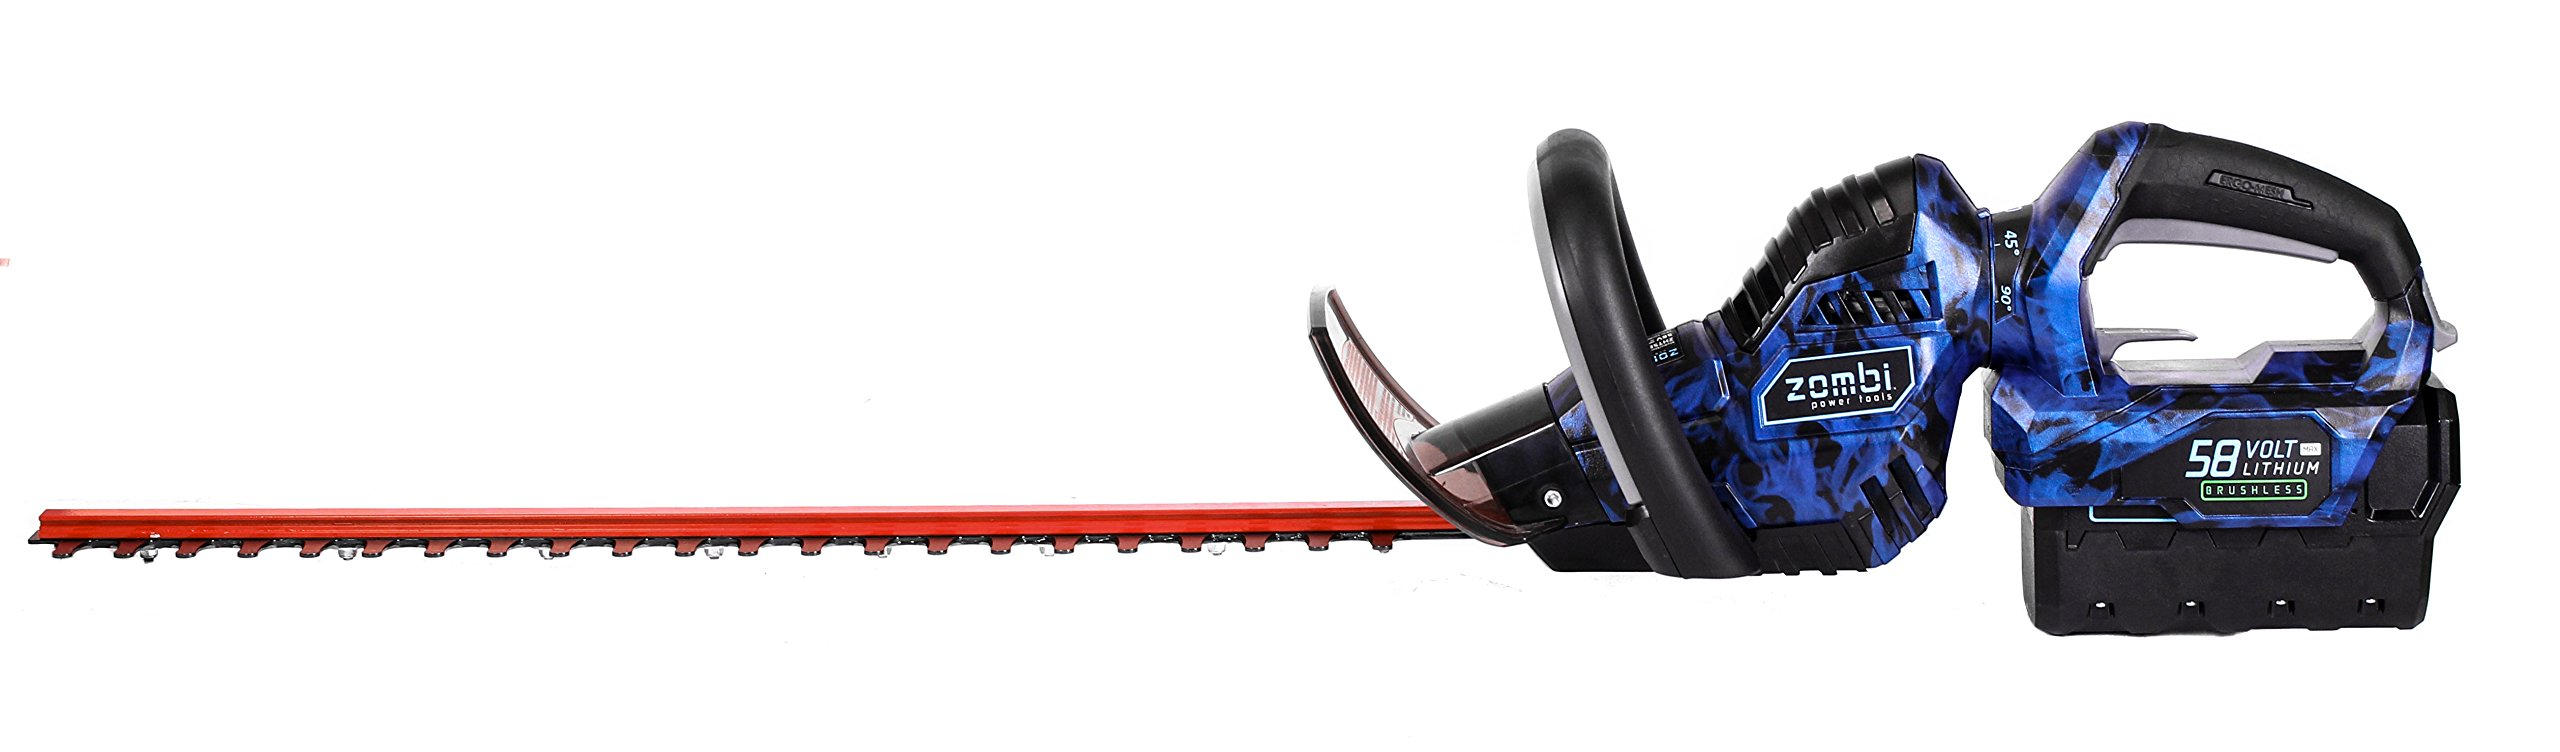 Zombi ZHT5817 24-Inch 58 Volt 2Ah Lithium Cordless Electric Hedge Trimmer, Battery & Charger Included